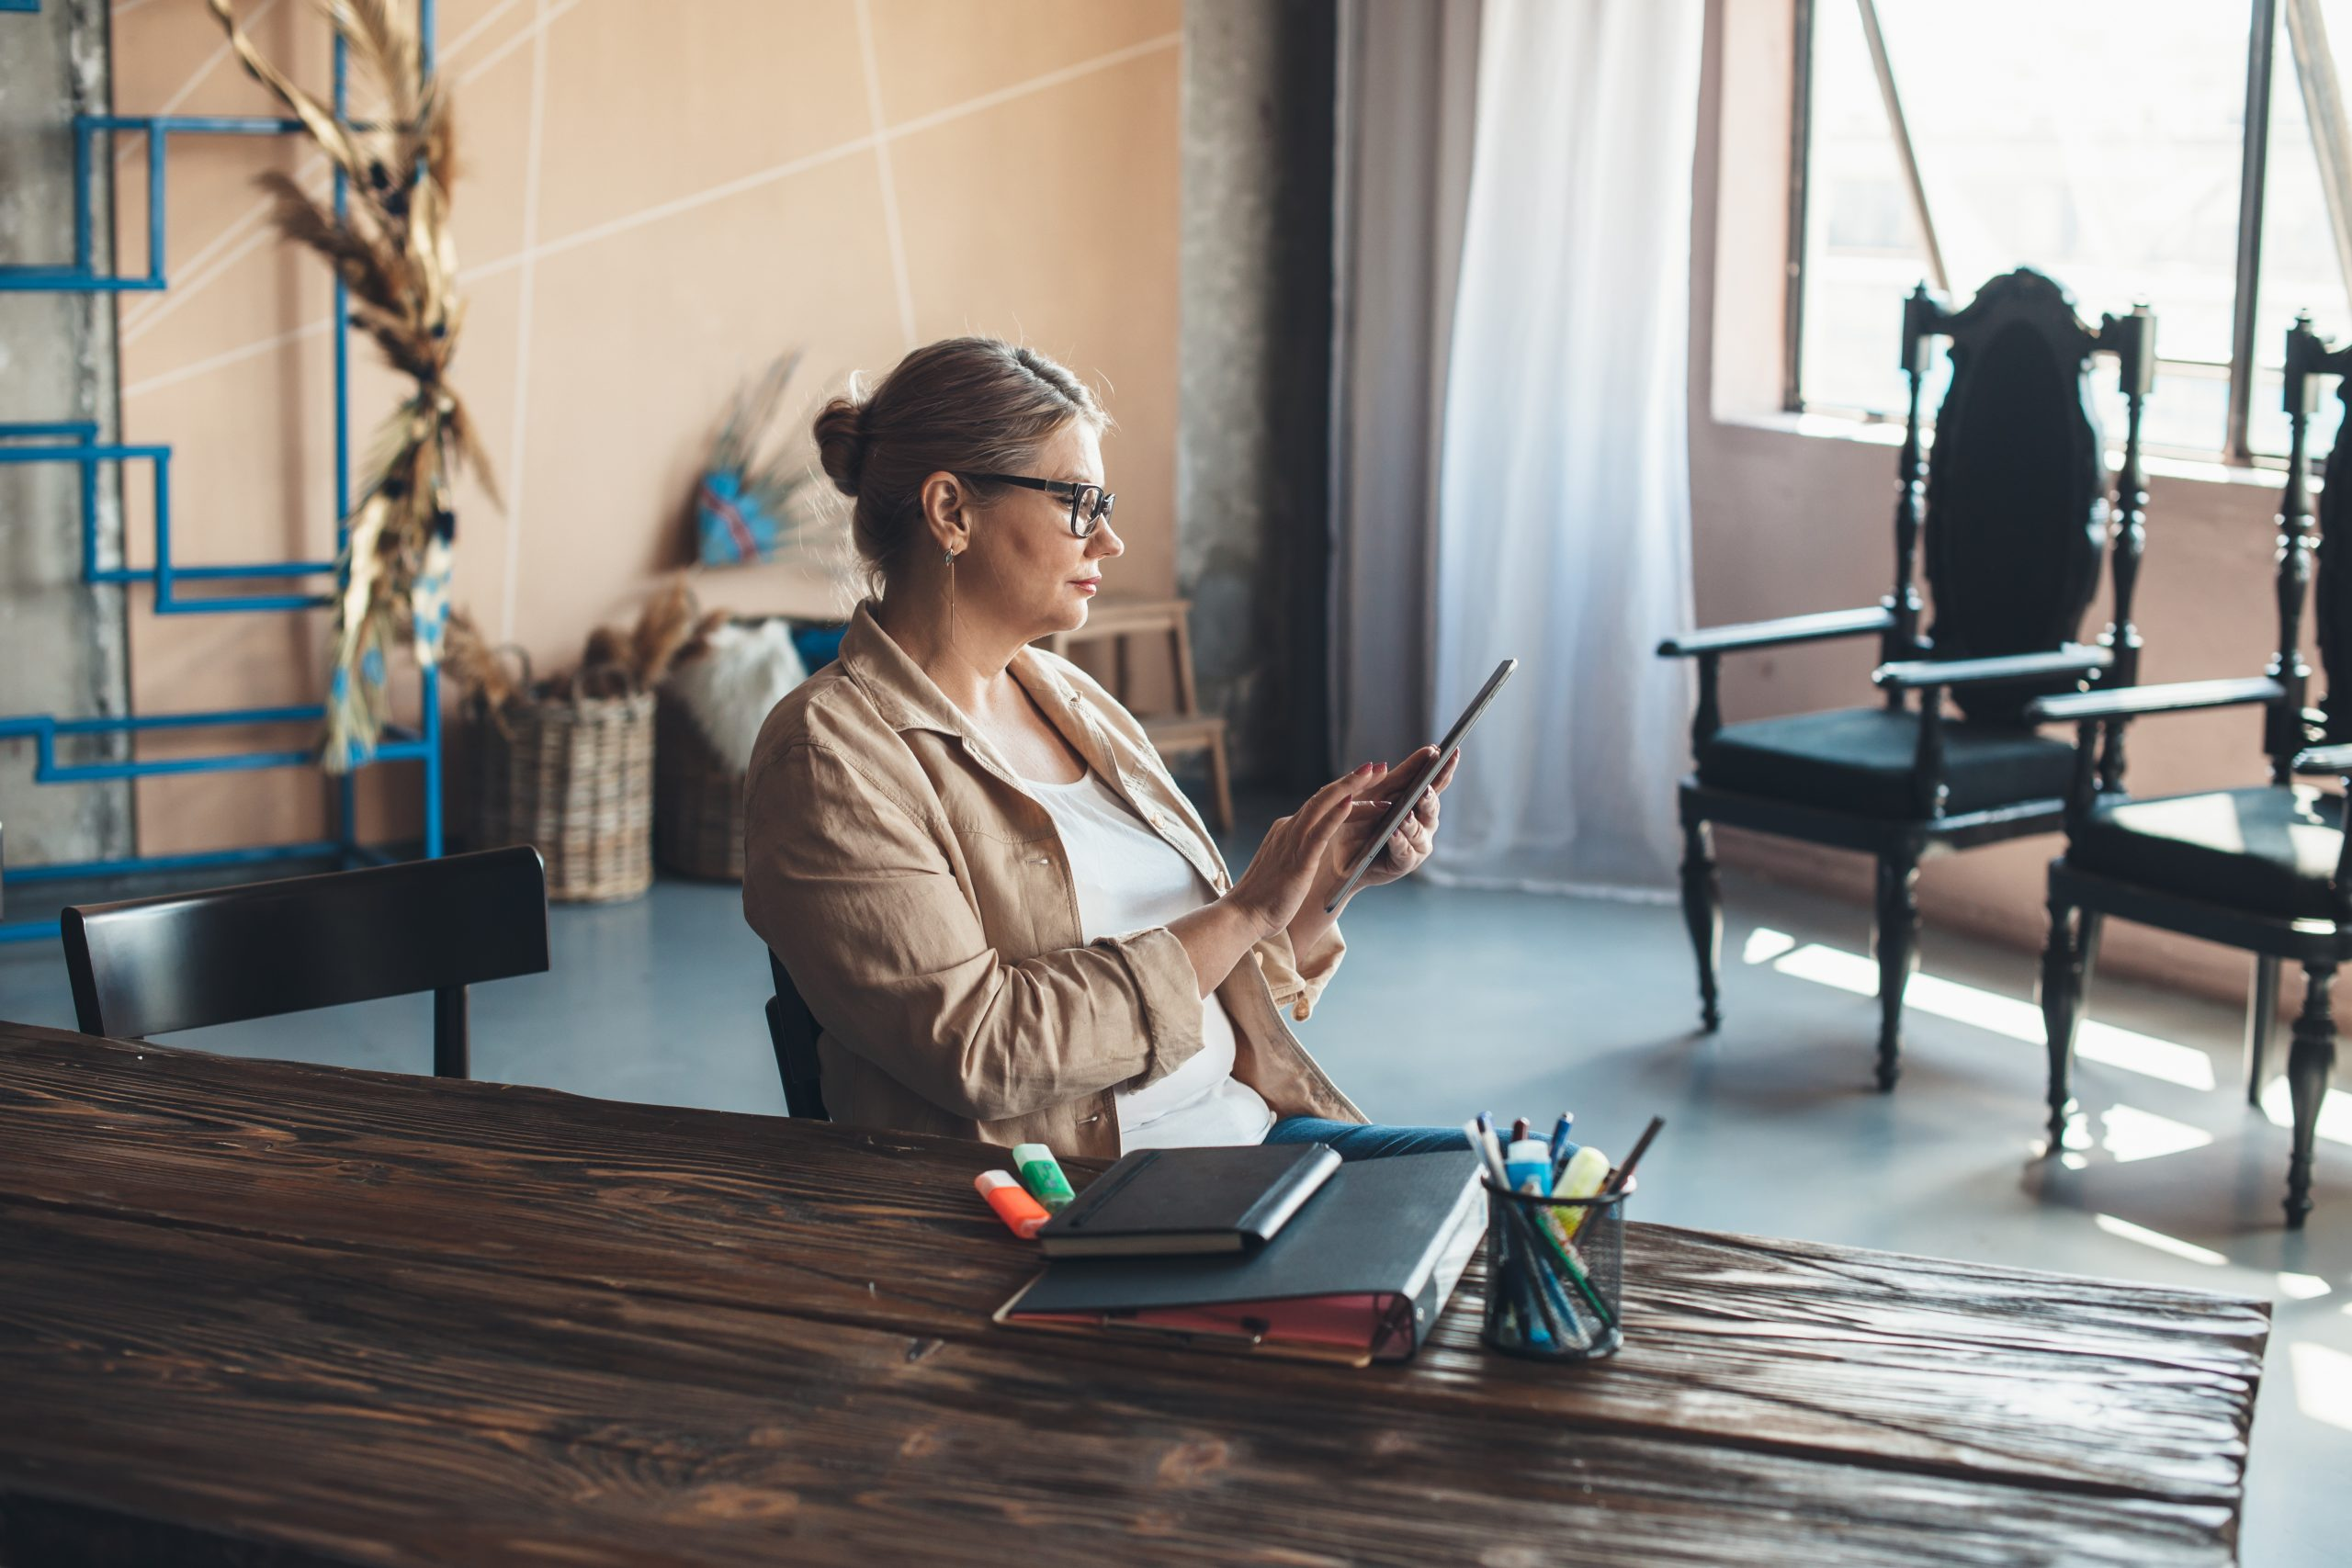 Senior,Caucasian,Woman,Is,Using,A,Tablet,At,Home,After